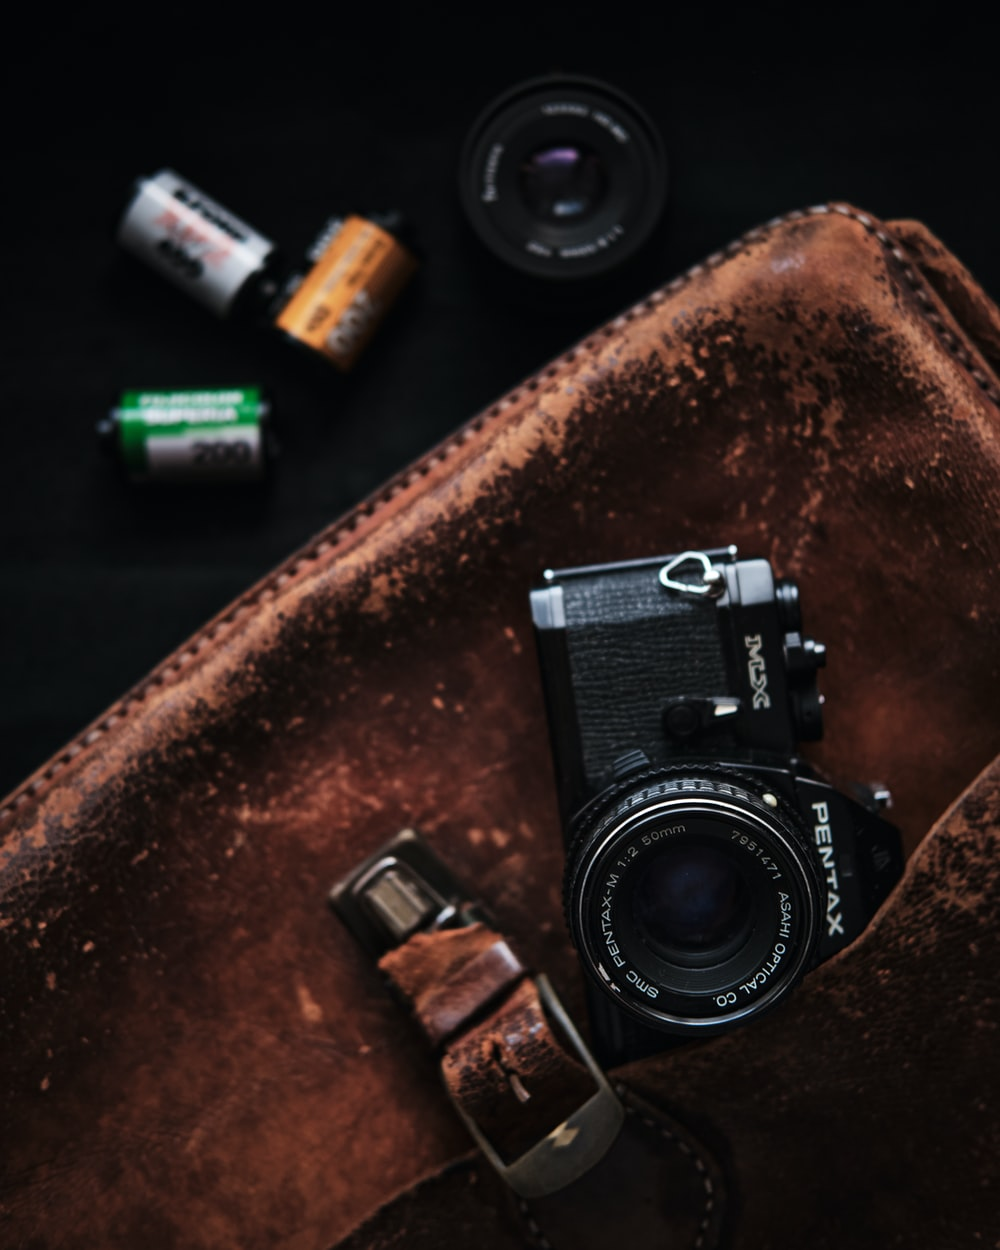 black and silver camera on brown leather textile